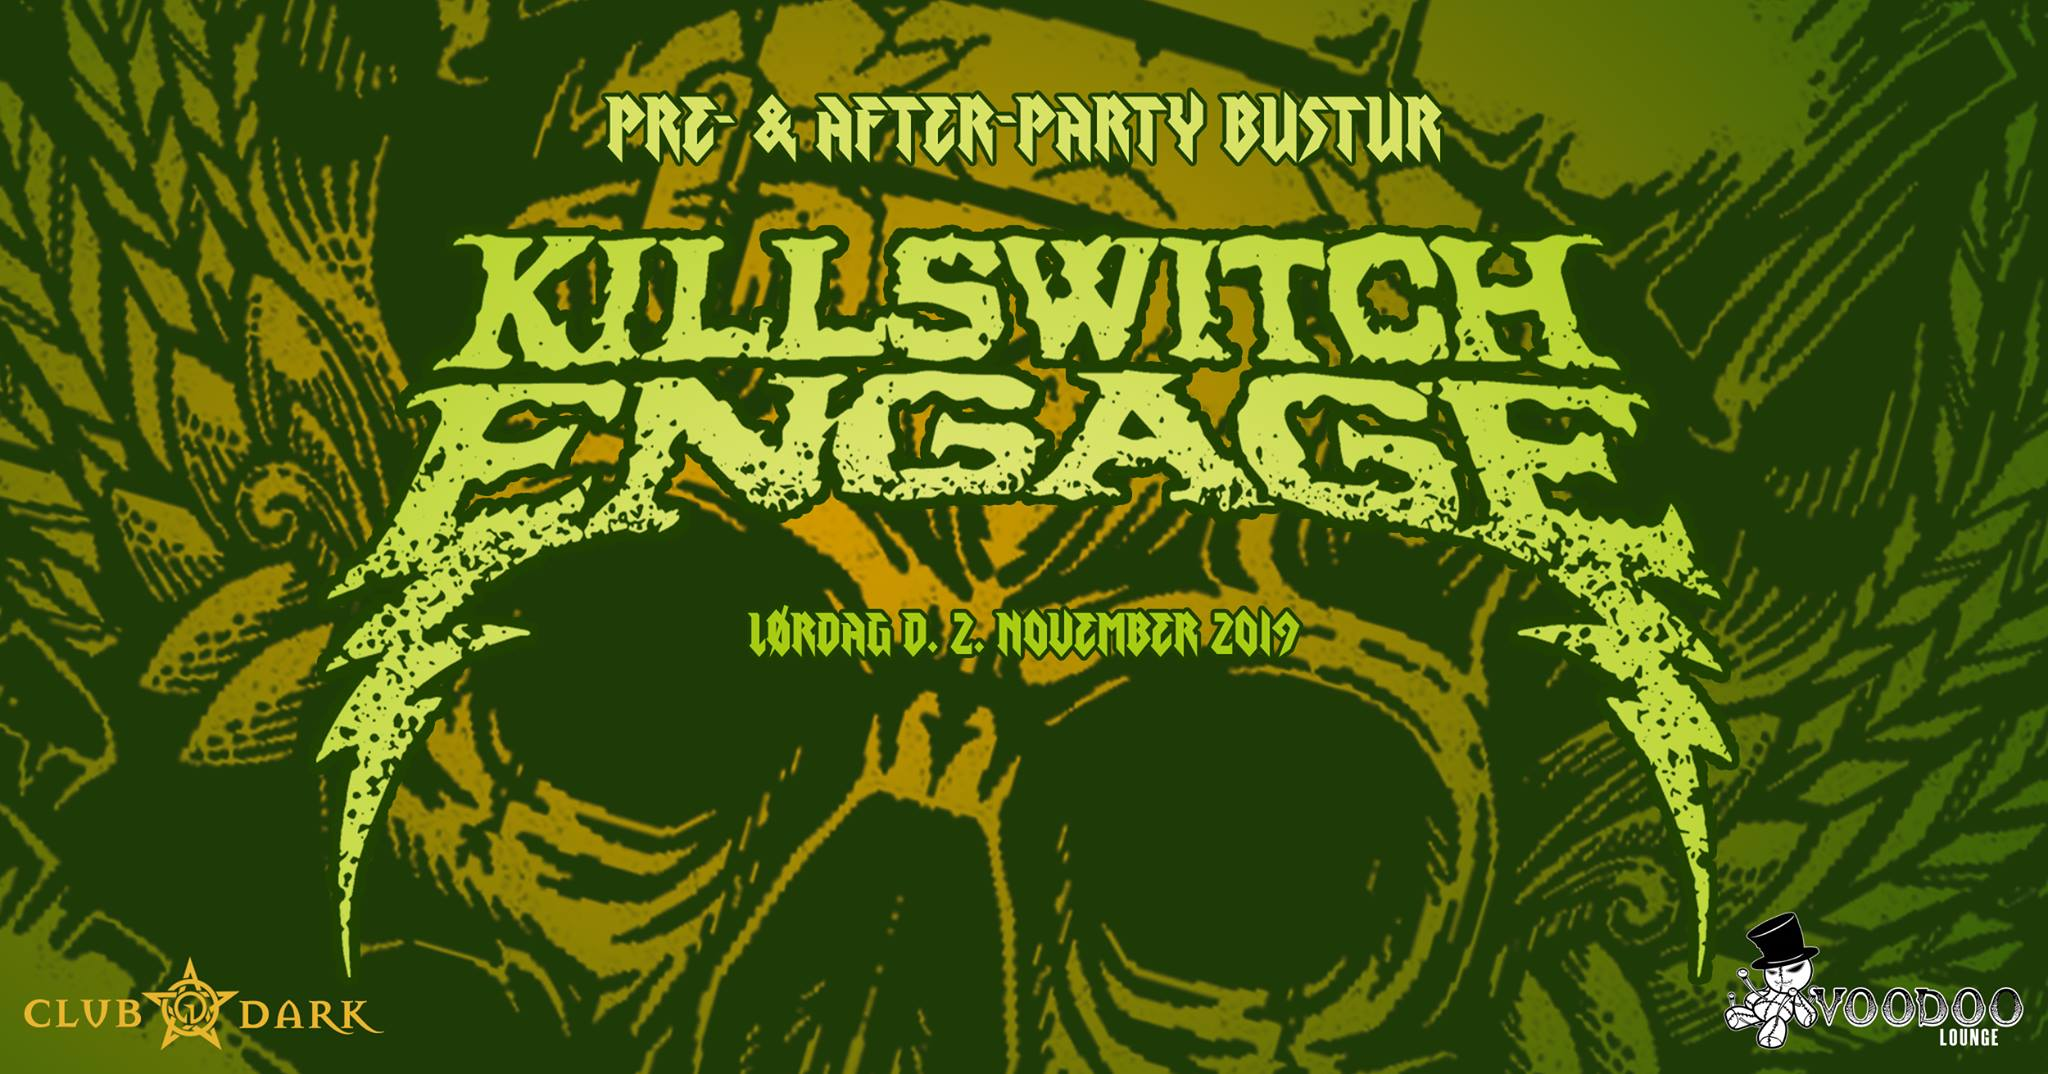 Killswitch Engage pre- & after-party bus trip